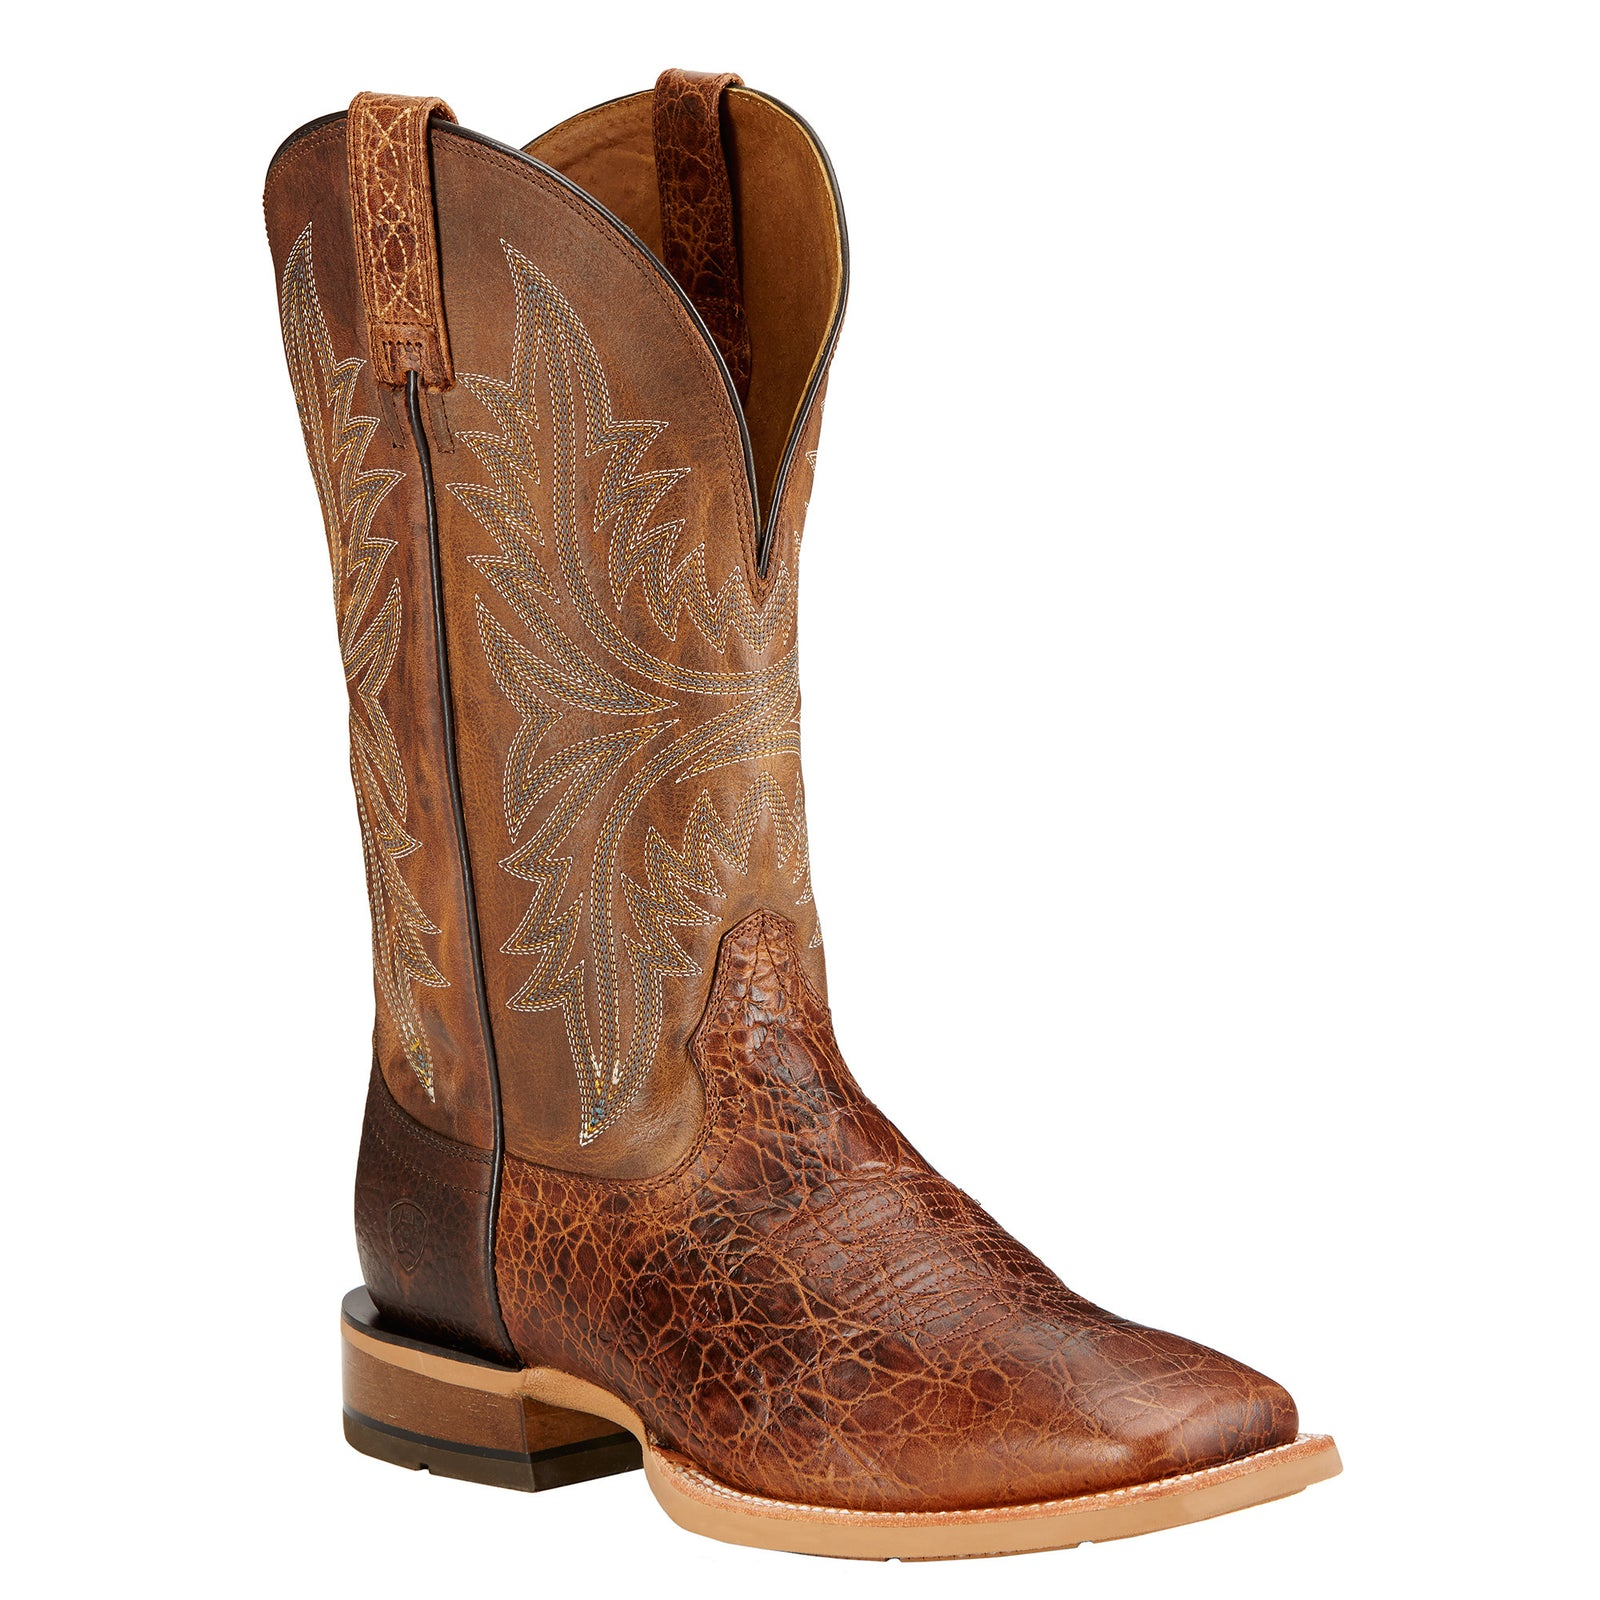 Ariat Men's Cowhand Western Boots